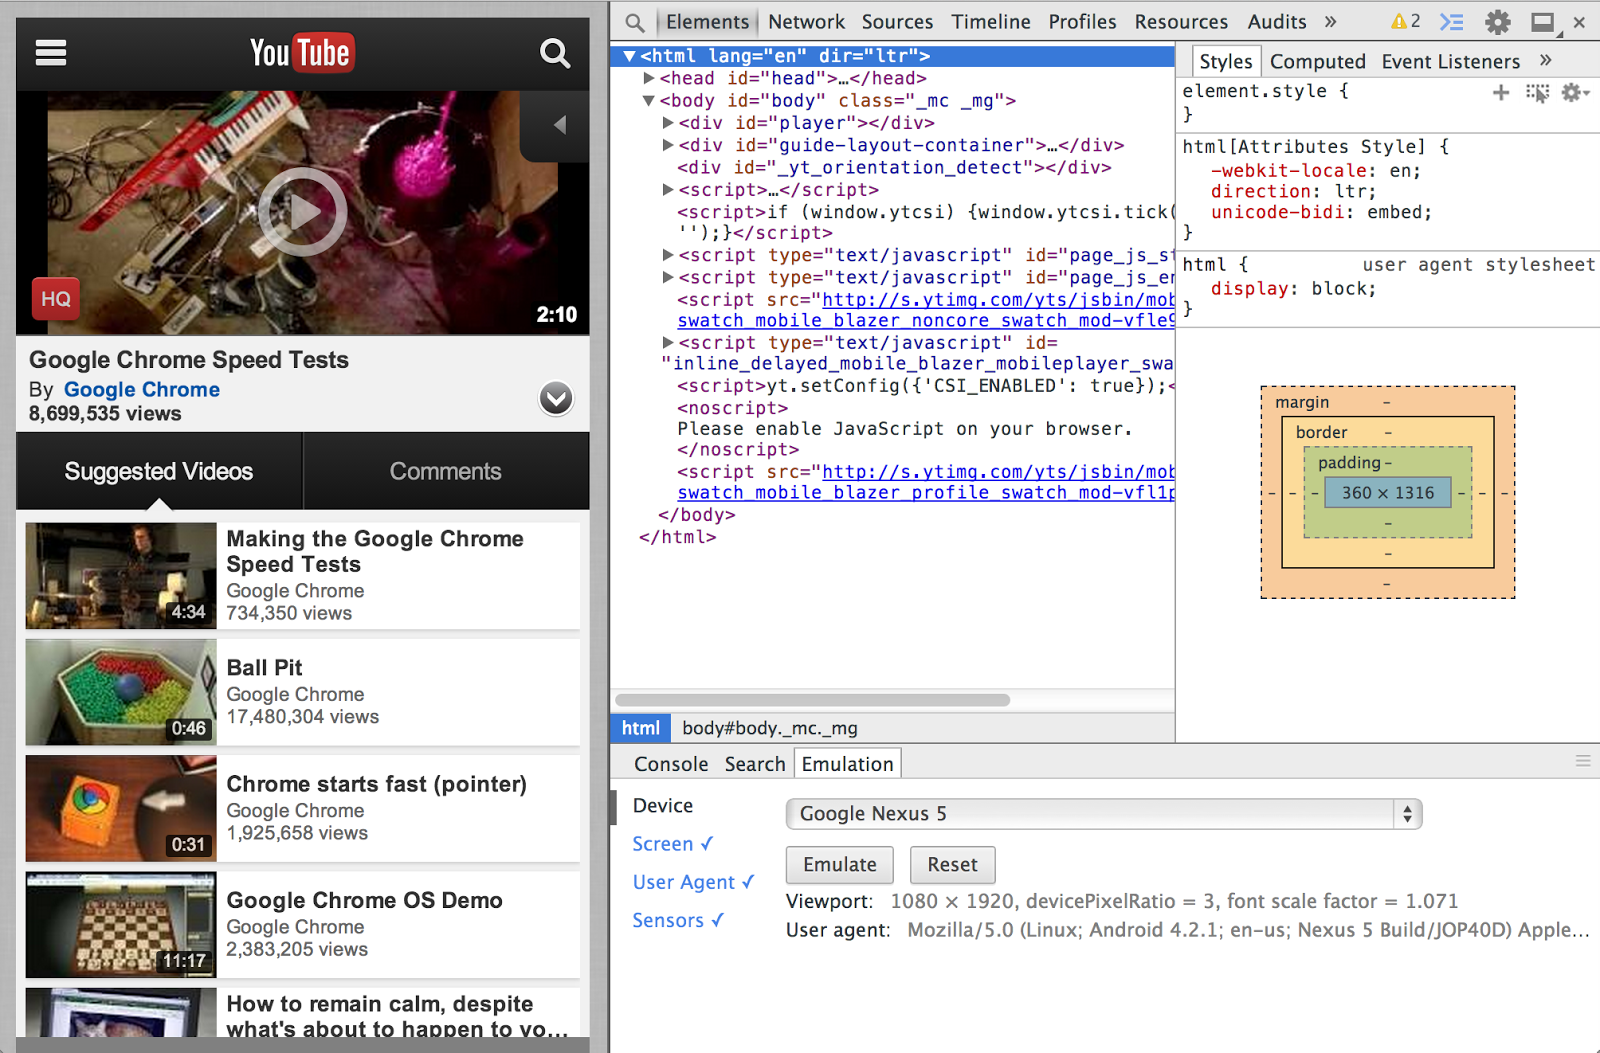 Chromium Blog: Chrome DevTools for Mobile: Emulate and